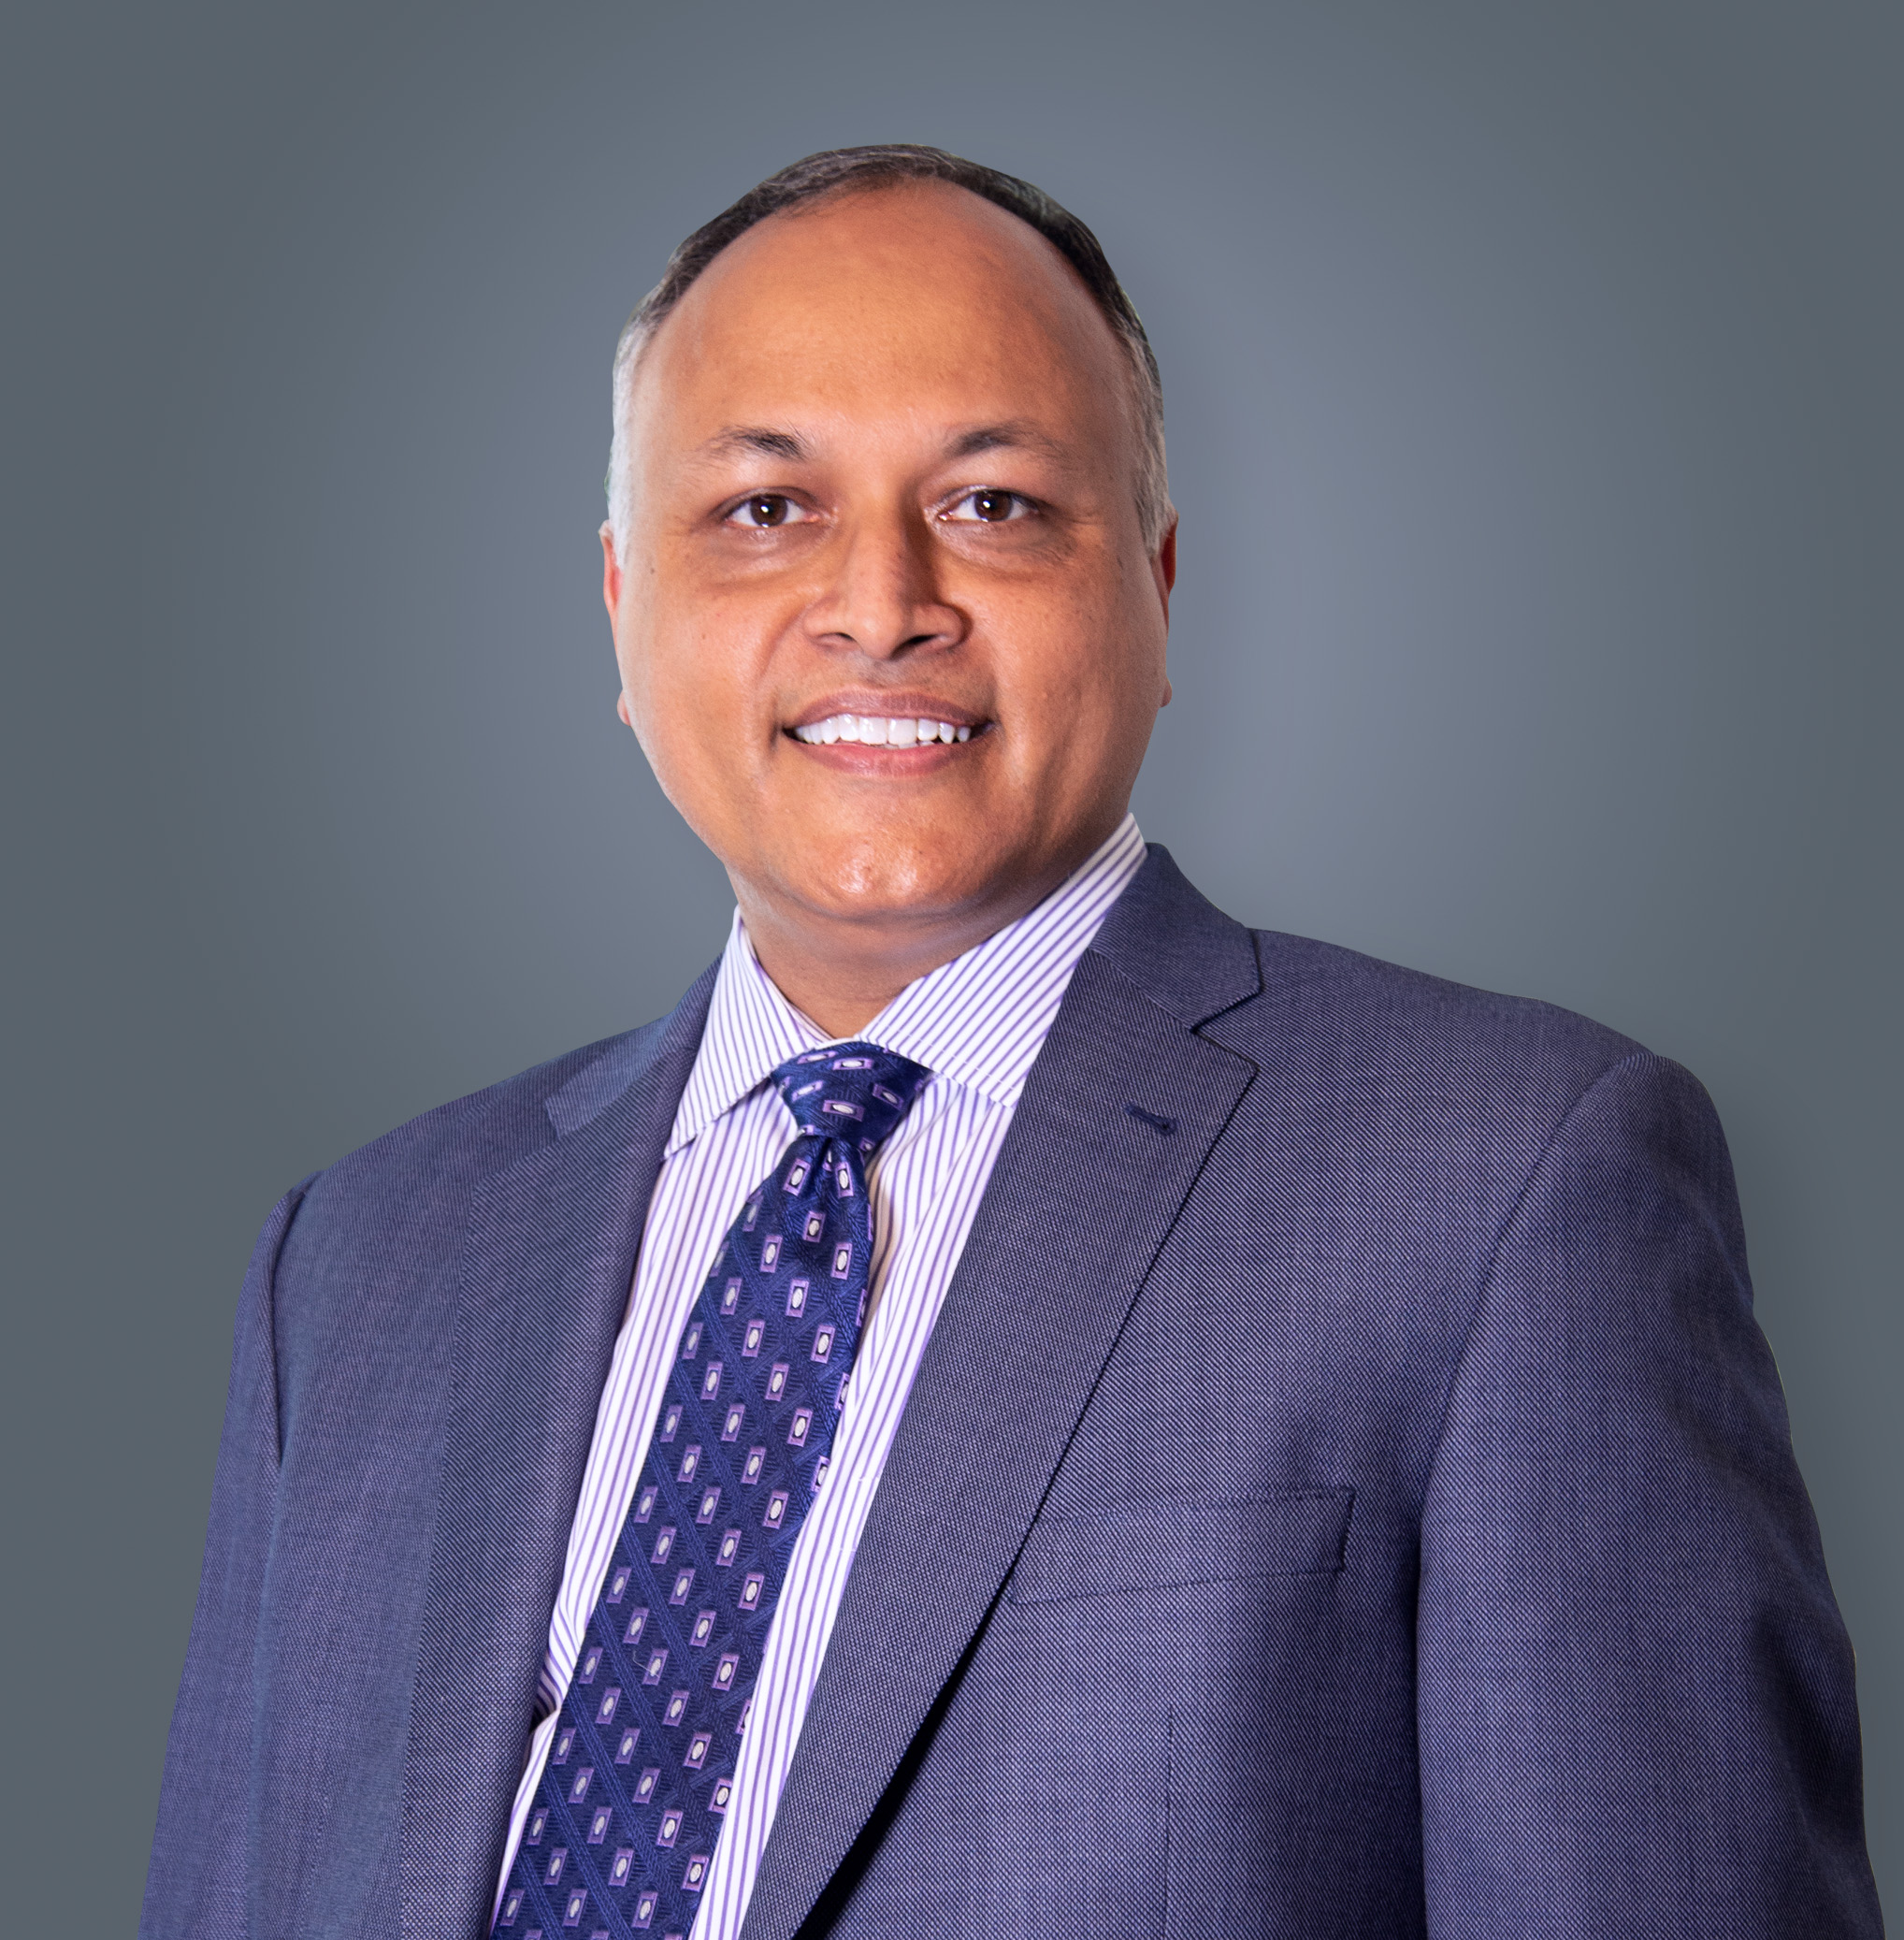 Srini Iyer, ManTech's Chief Technology Officer in charge of the company's Innovation and Capabilities Office